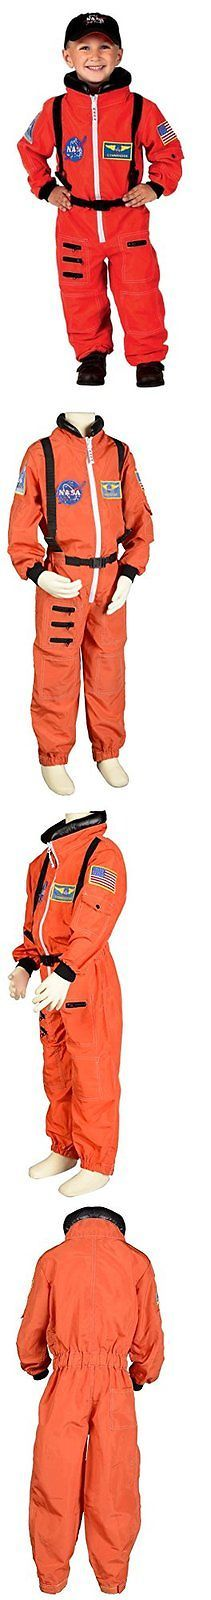 Dress-Up Costumes 19172: New Aeromax Jr. Astronaut Suit With Embroidered Cap Size 4 6 Orange -> BUY IT NOW ONLY: $39.19 on eBay!